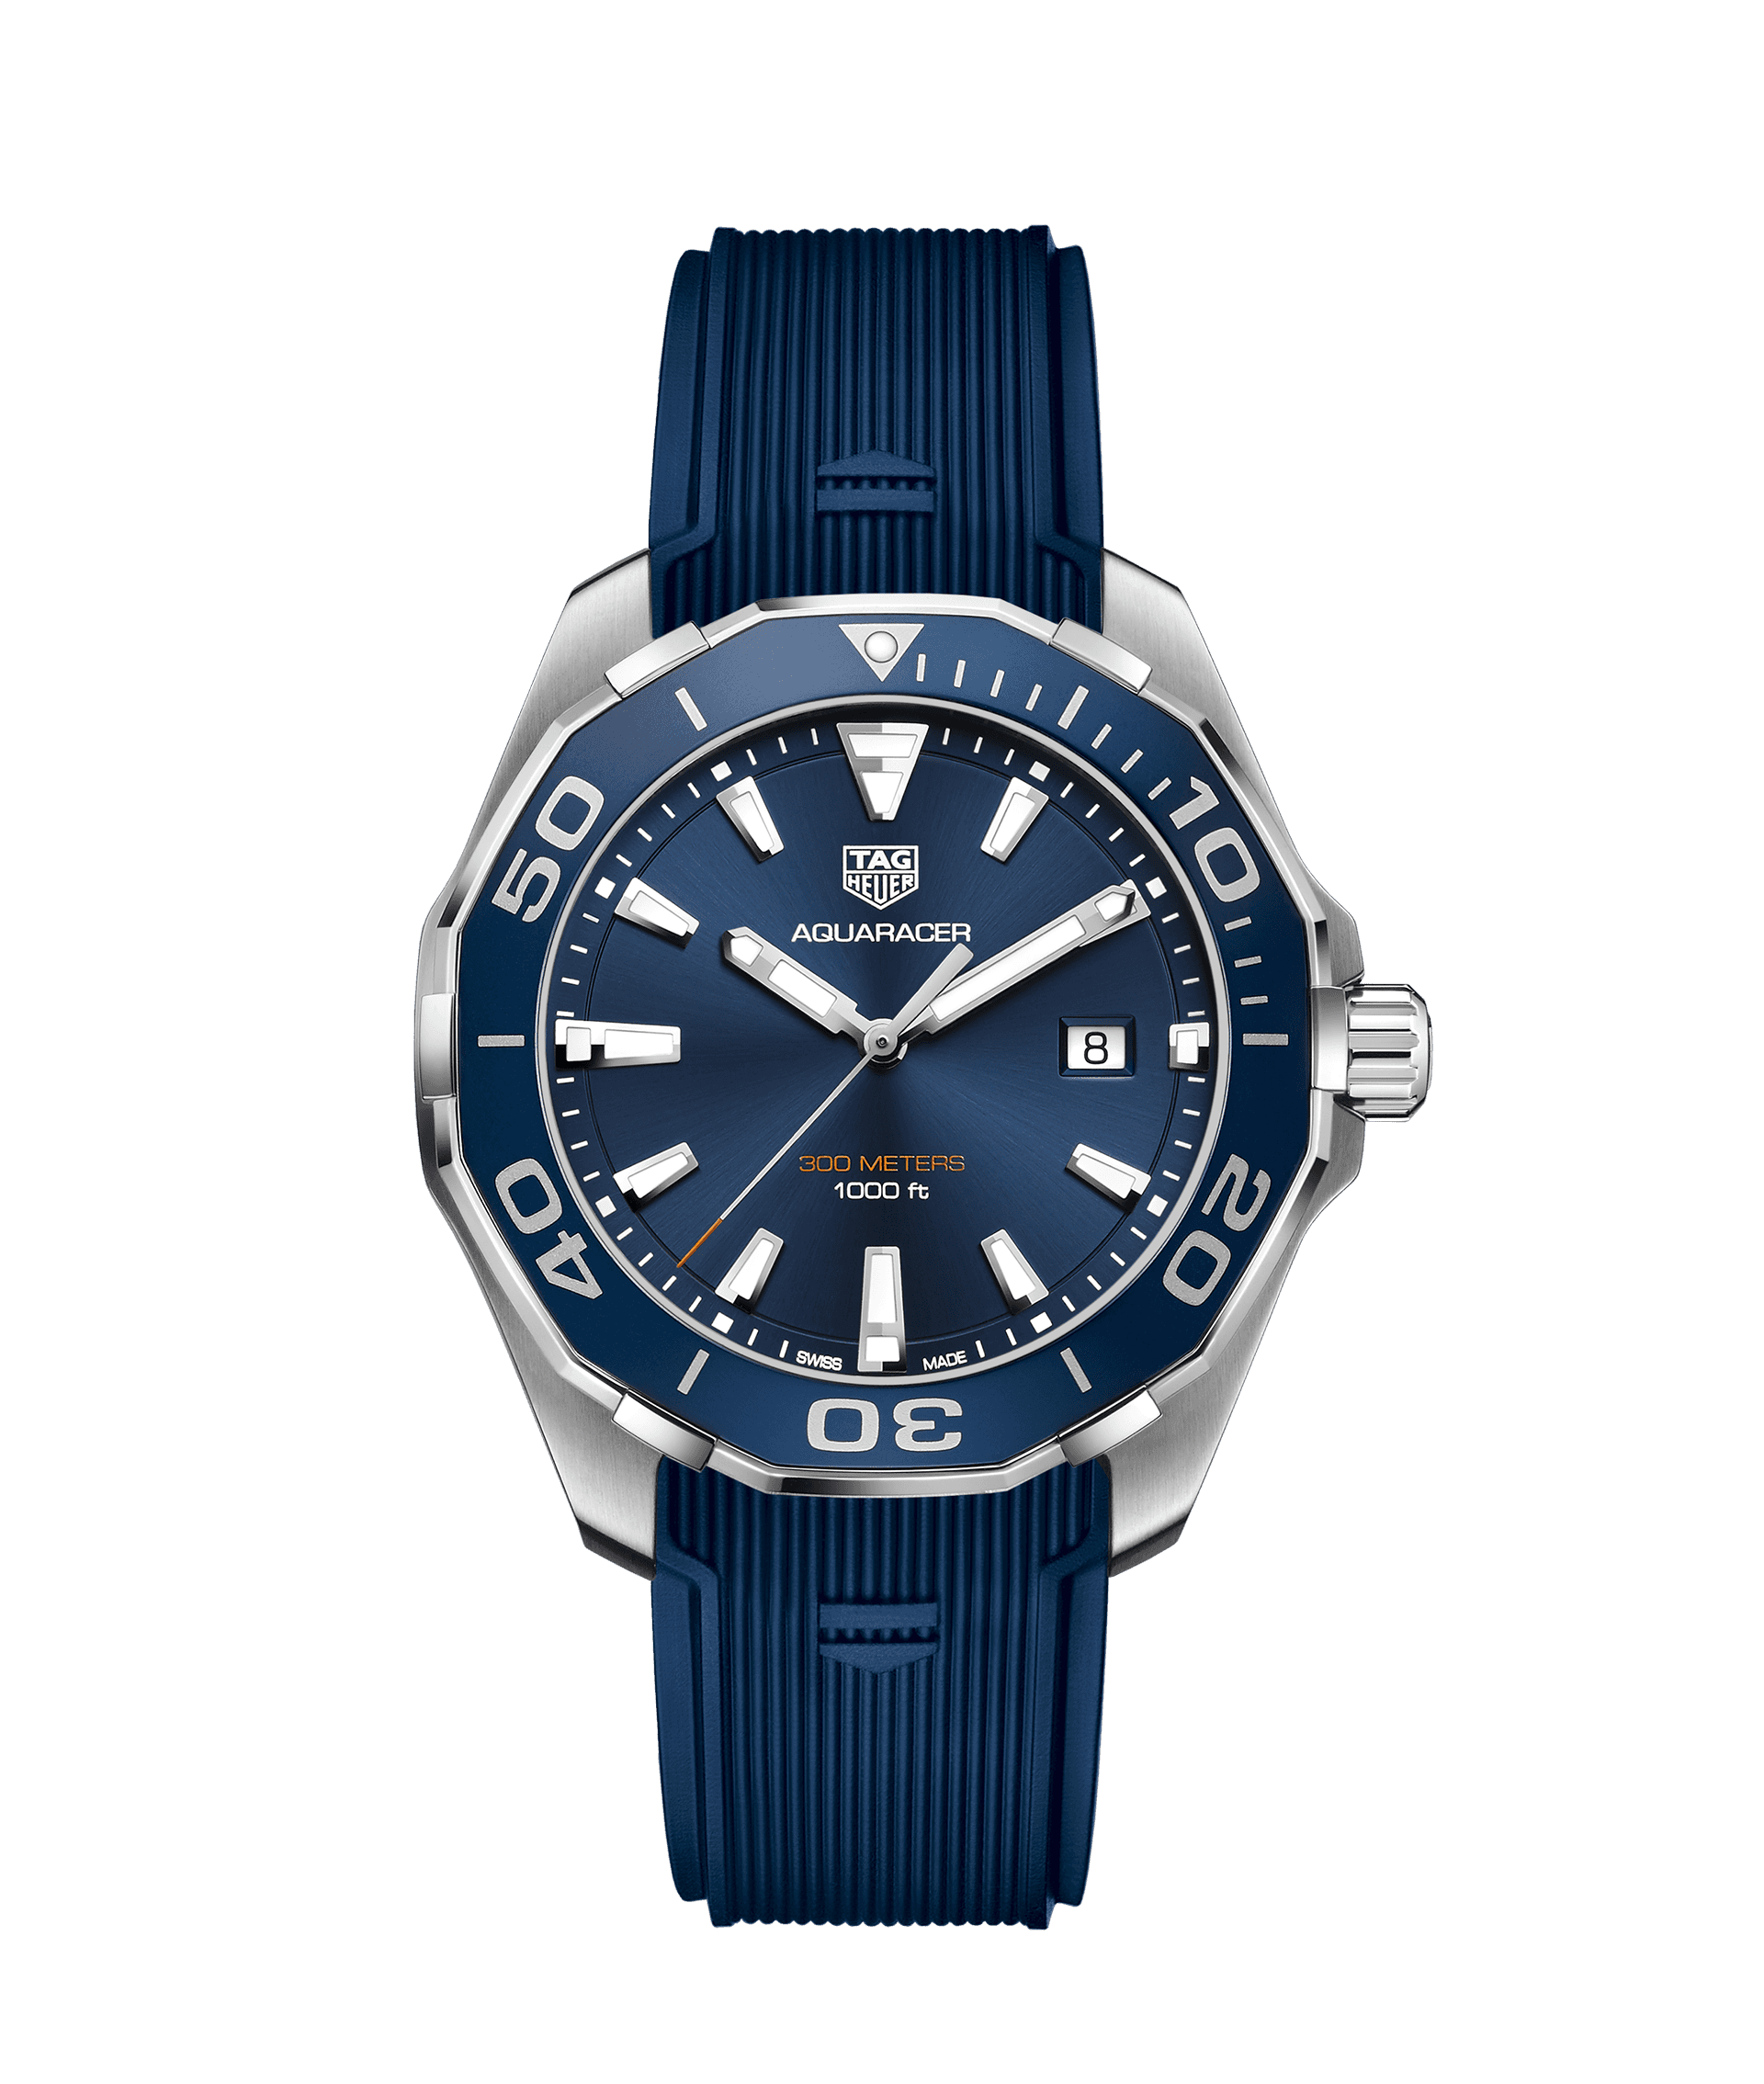 TAG HEUER AQUARACER 300m - 43 mm QUARTZ - WAY101C.FT6153